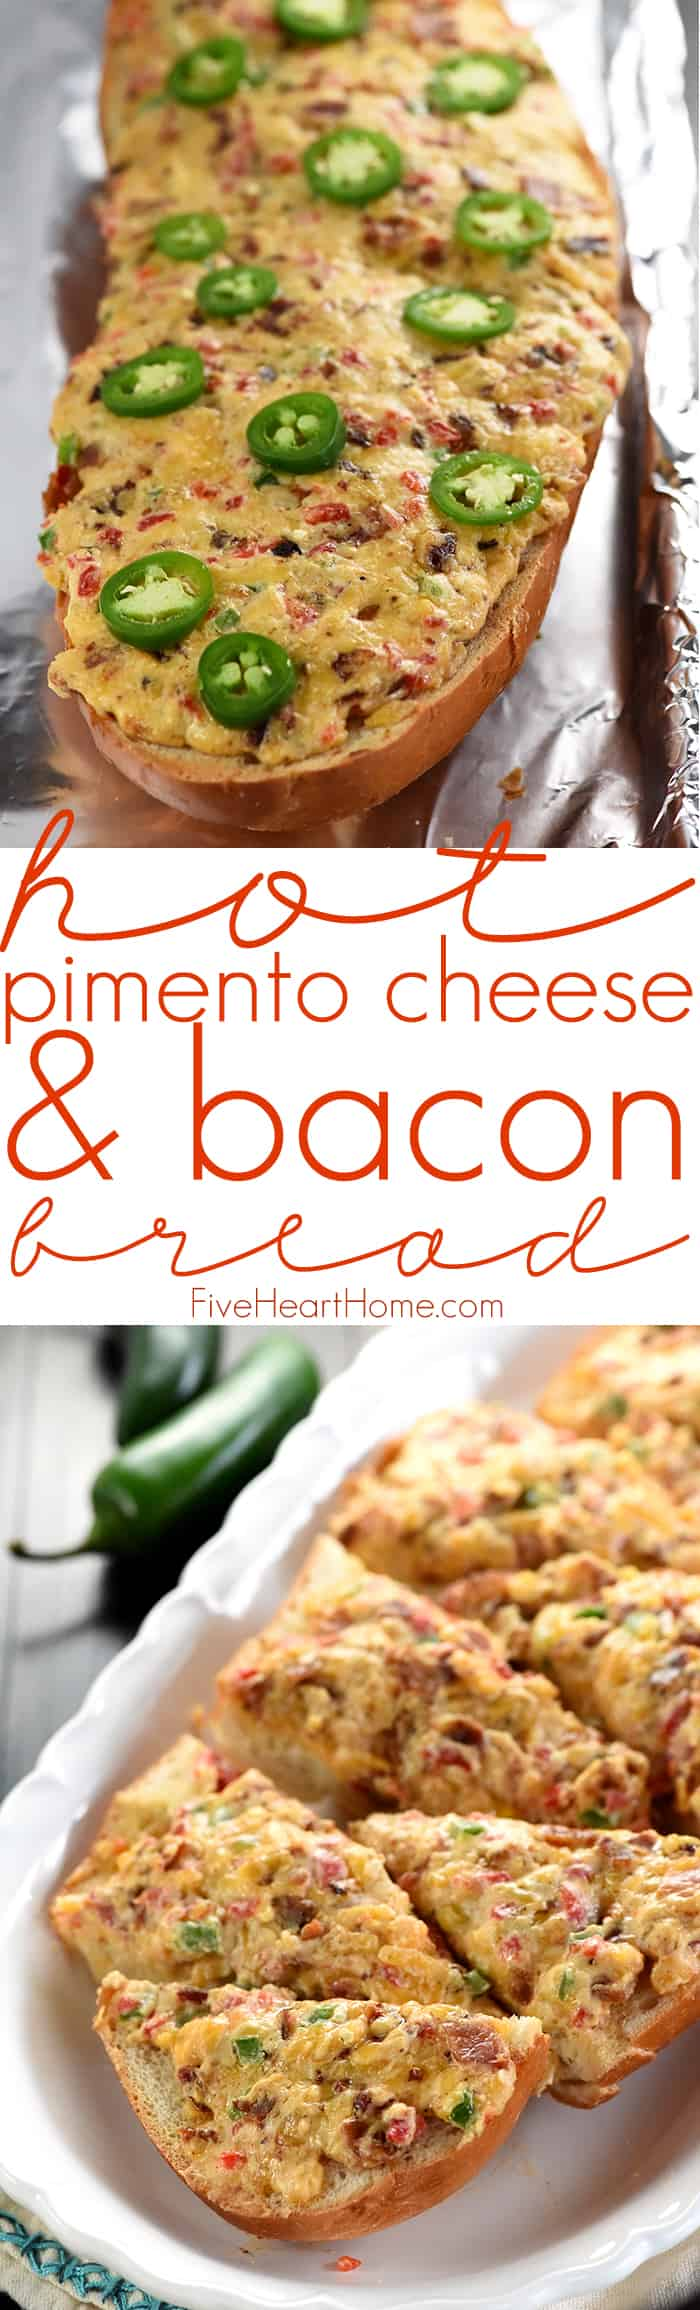 Hot Pimento Cheese & Bacon Bread Collage & Text Overlay